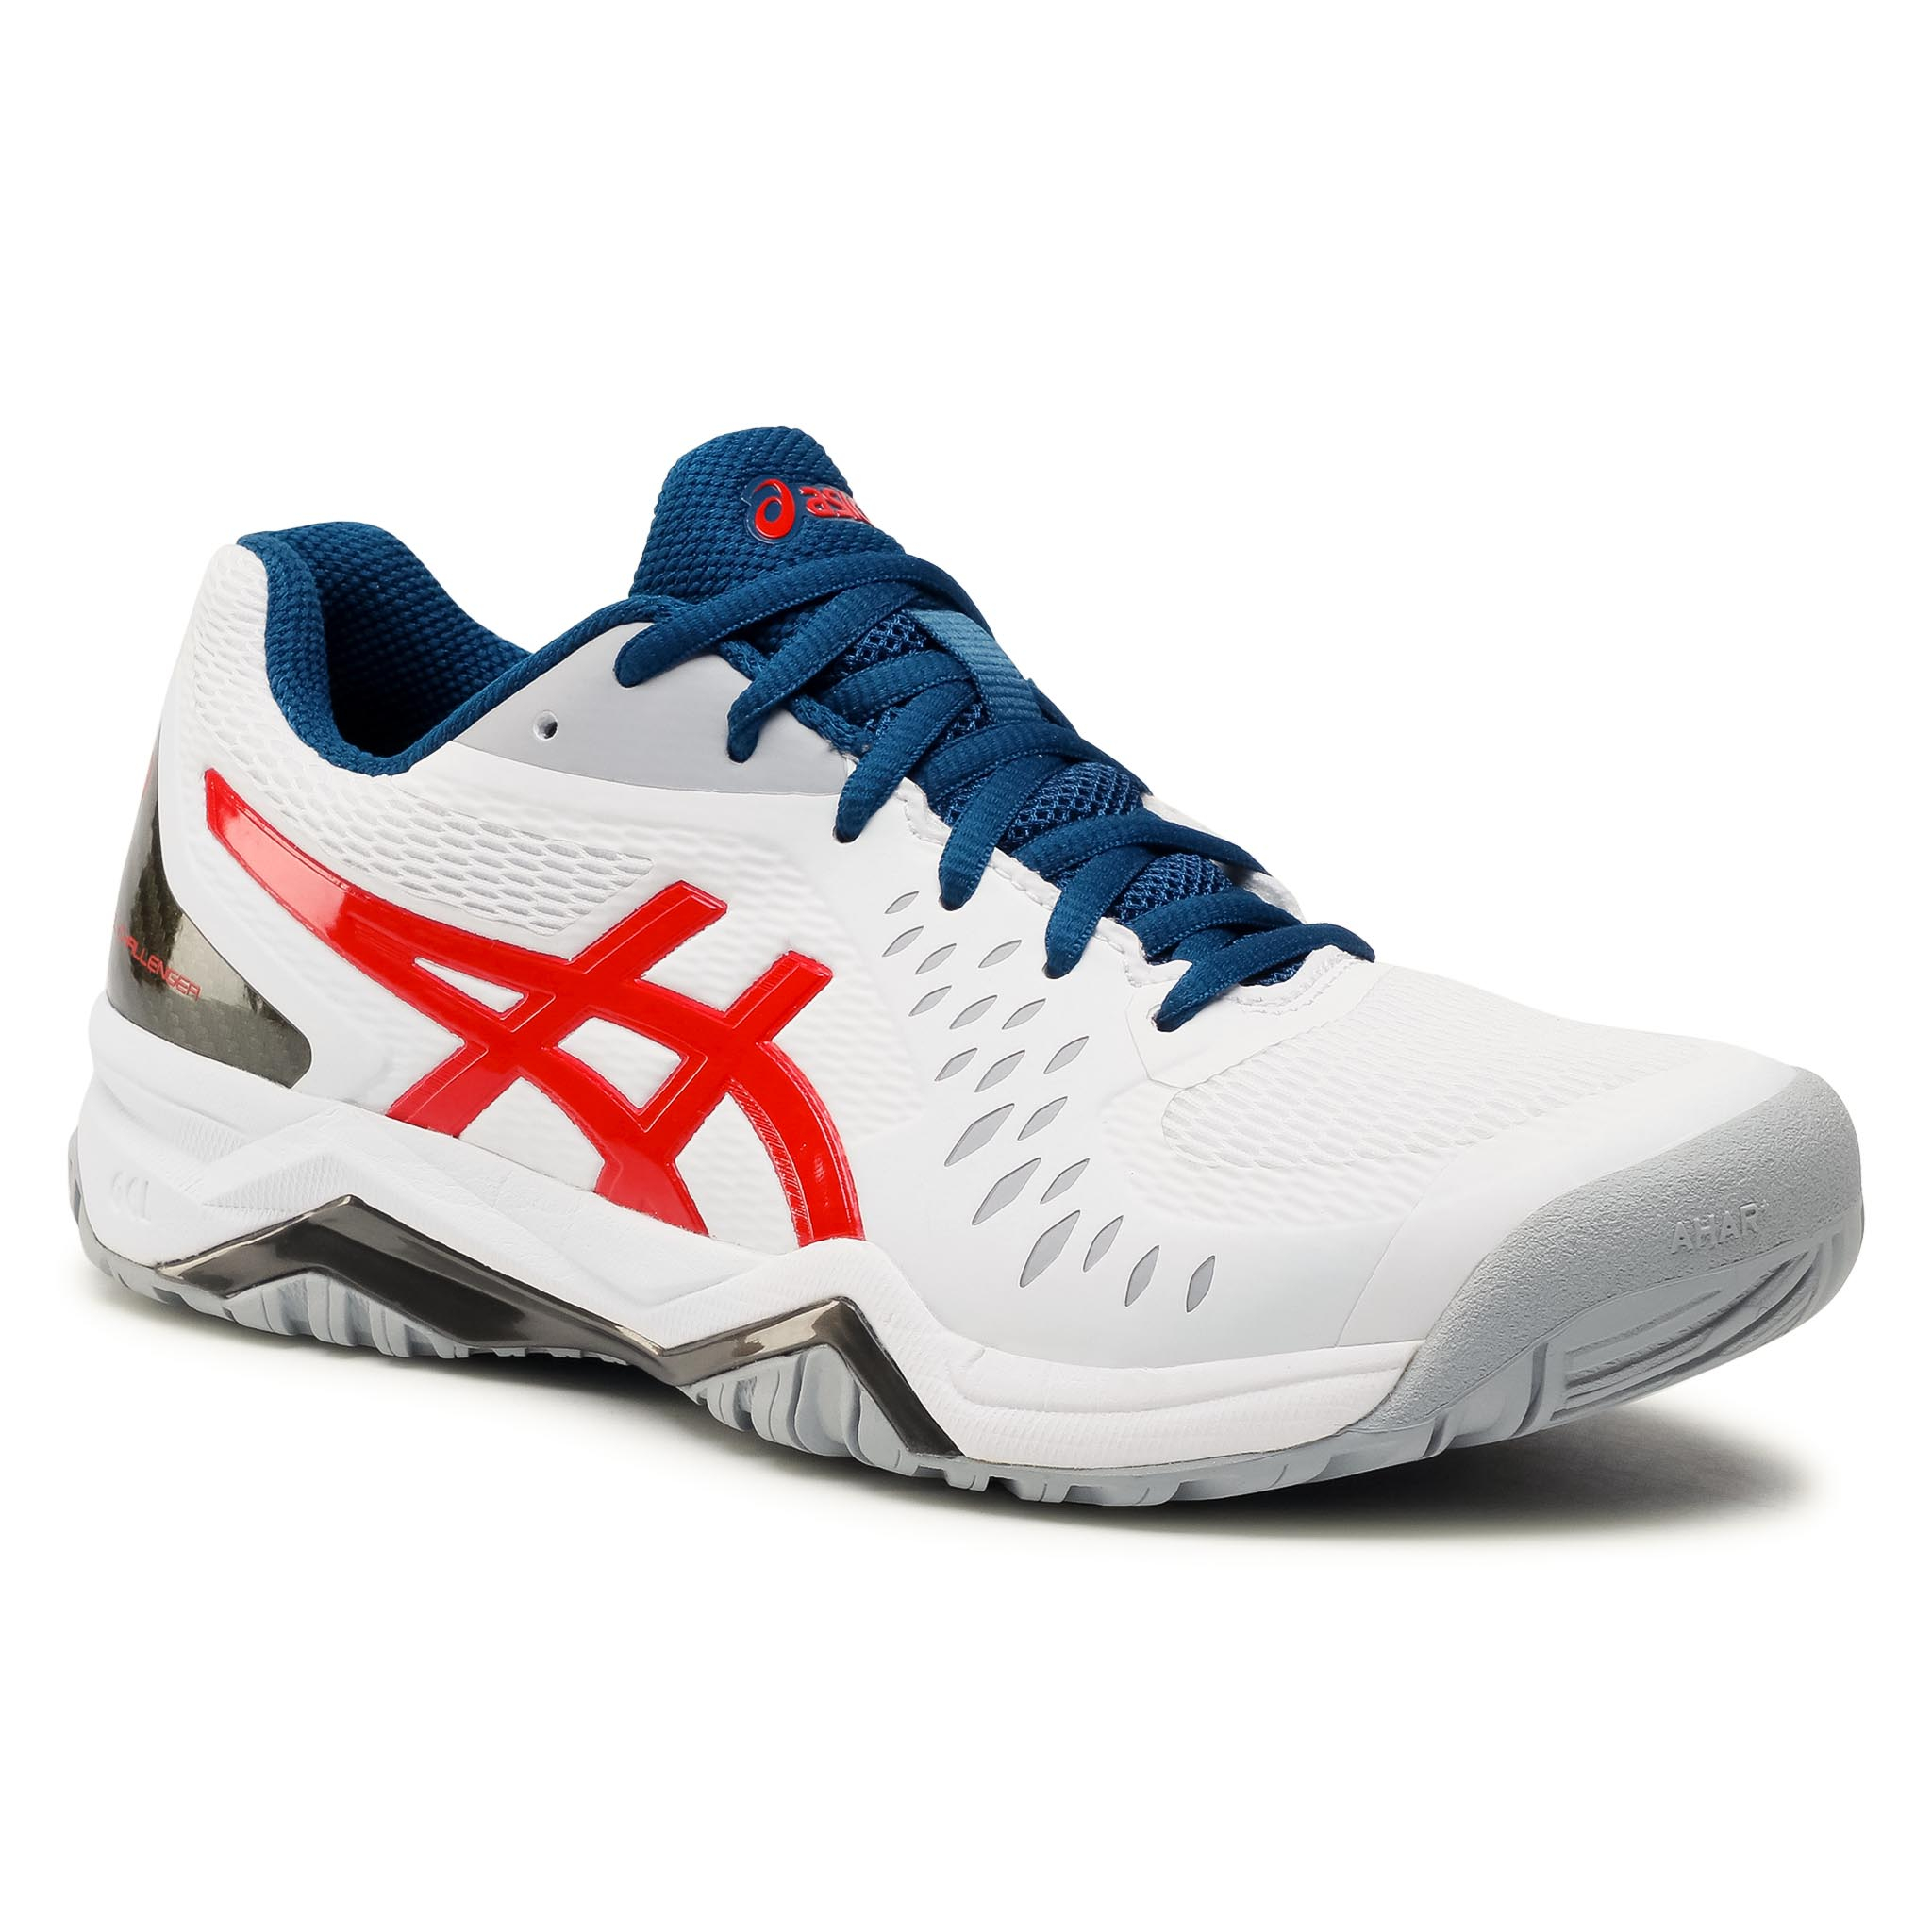 Batai ASICS - Gel-Challenger 12 1041A045 White/Classic Red 117